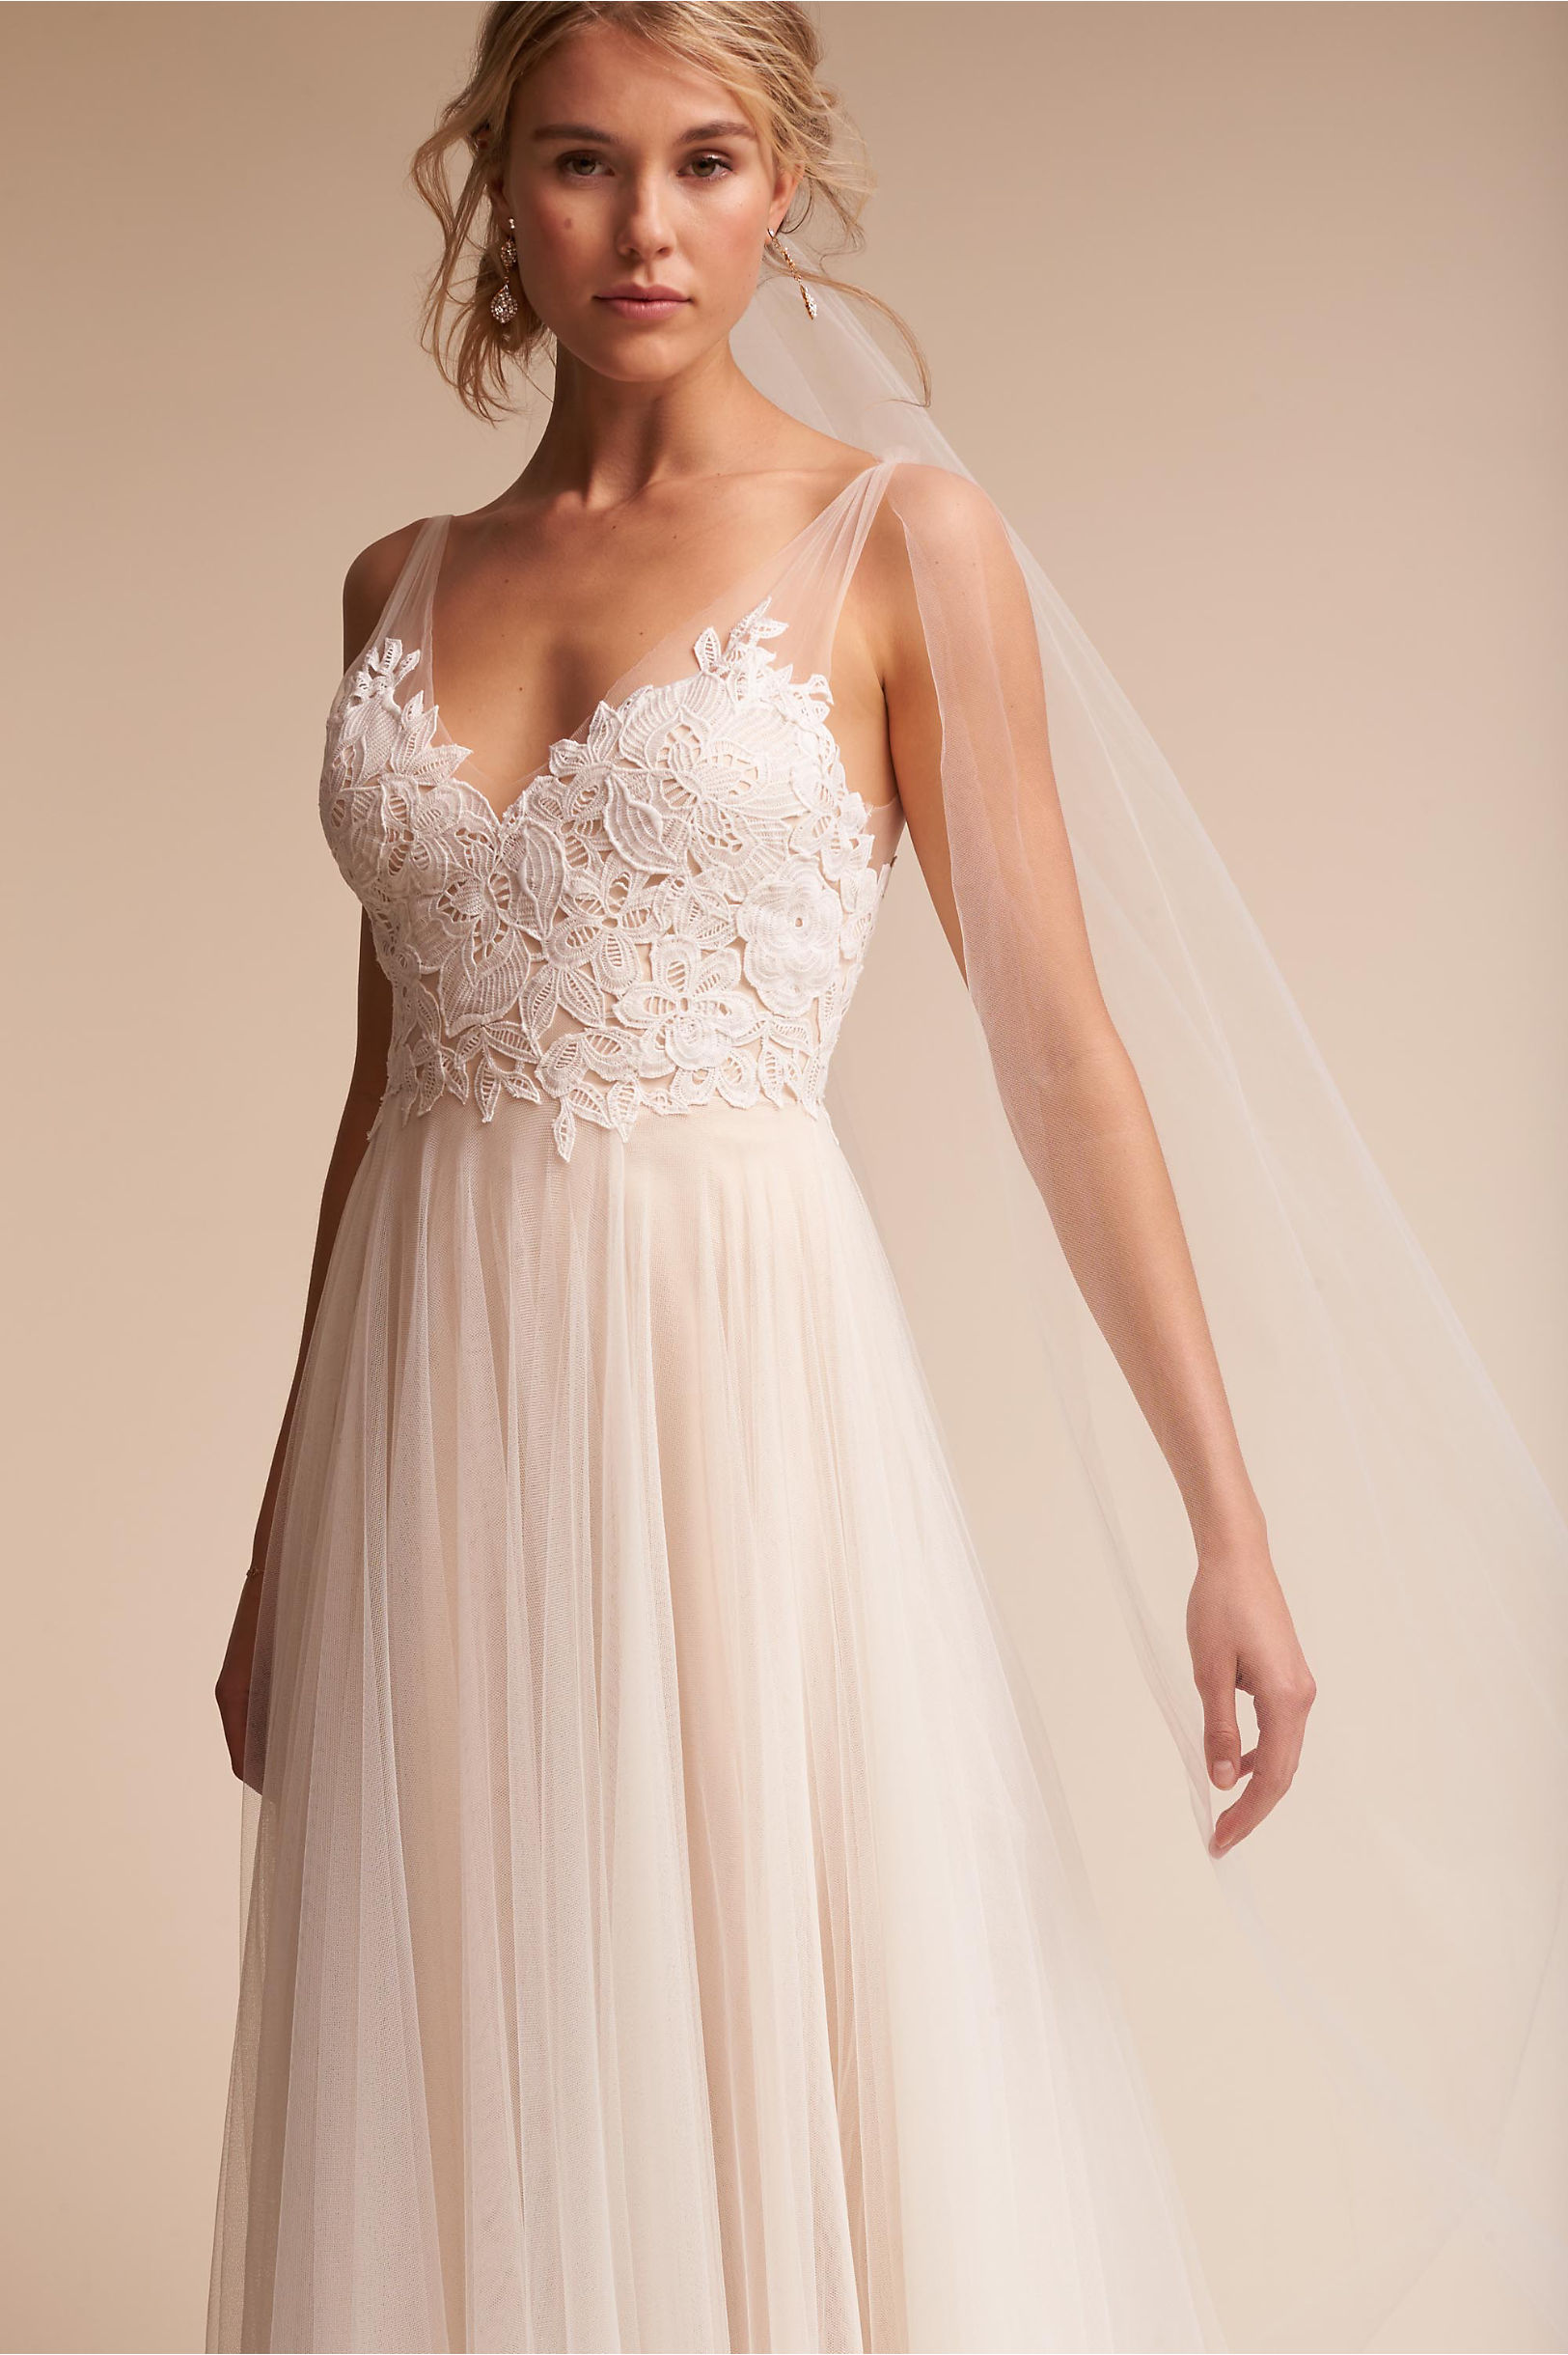 Heritage Gown Ivory/Champagne in Bride   BHLDN